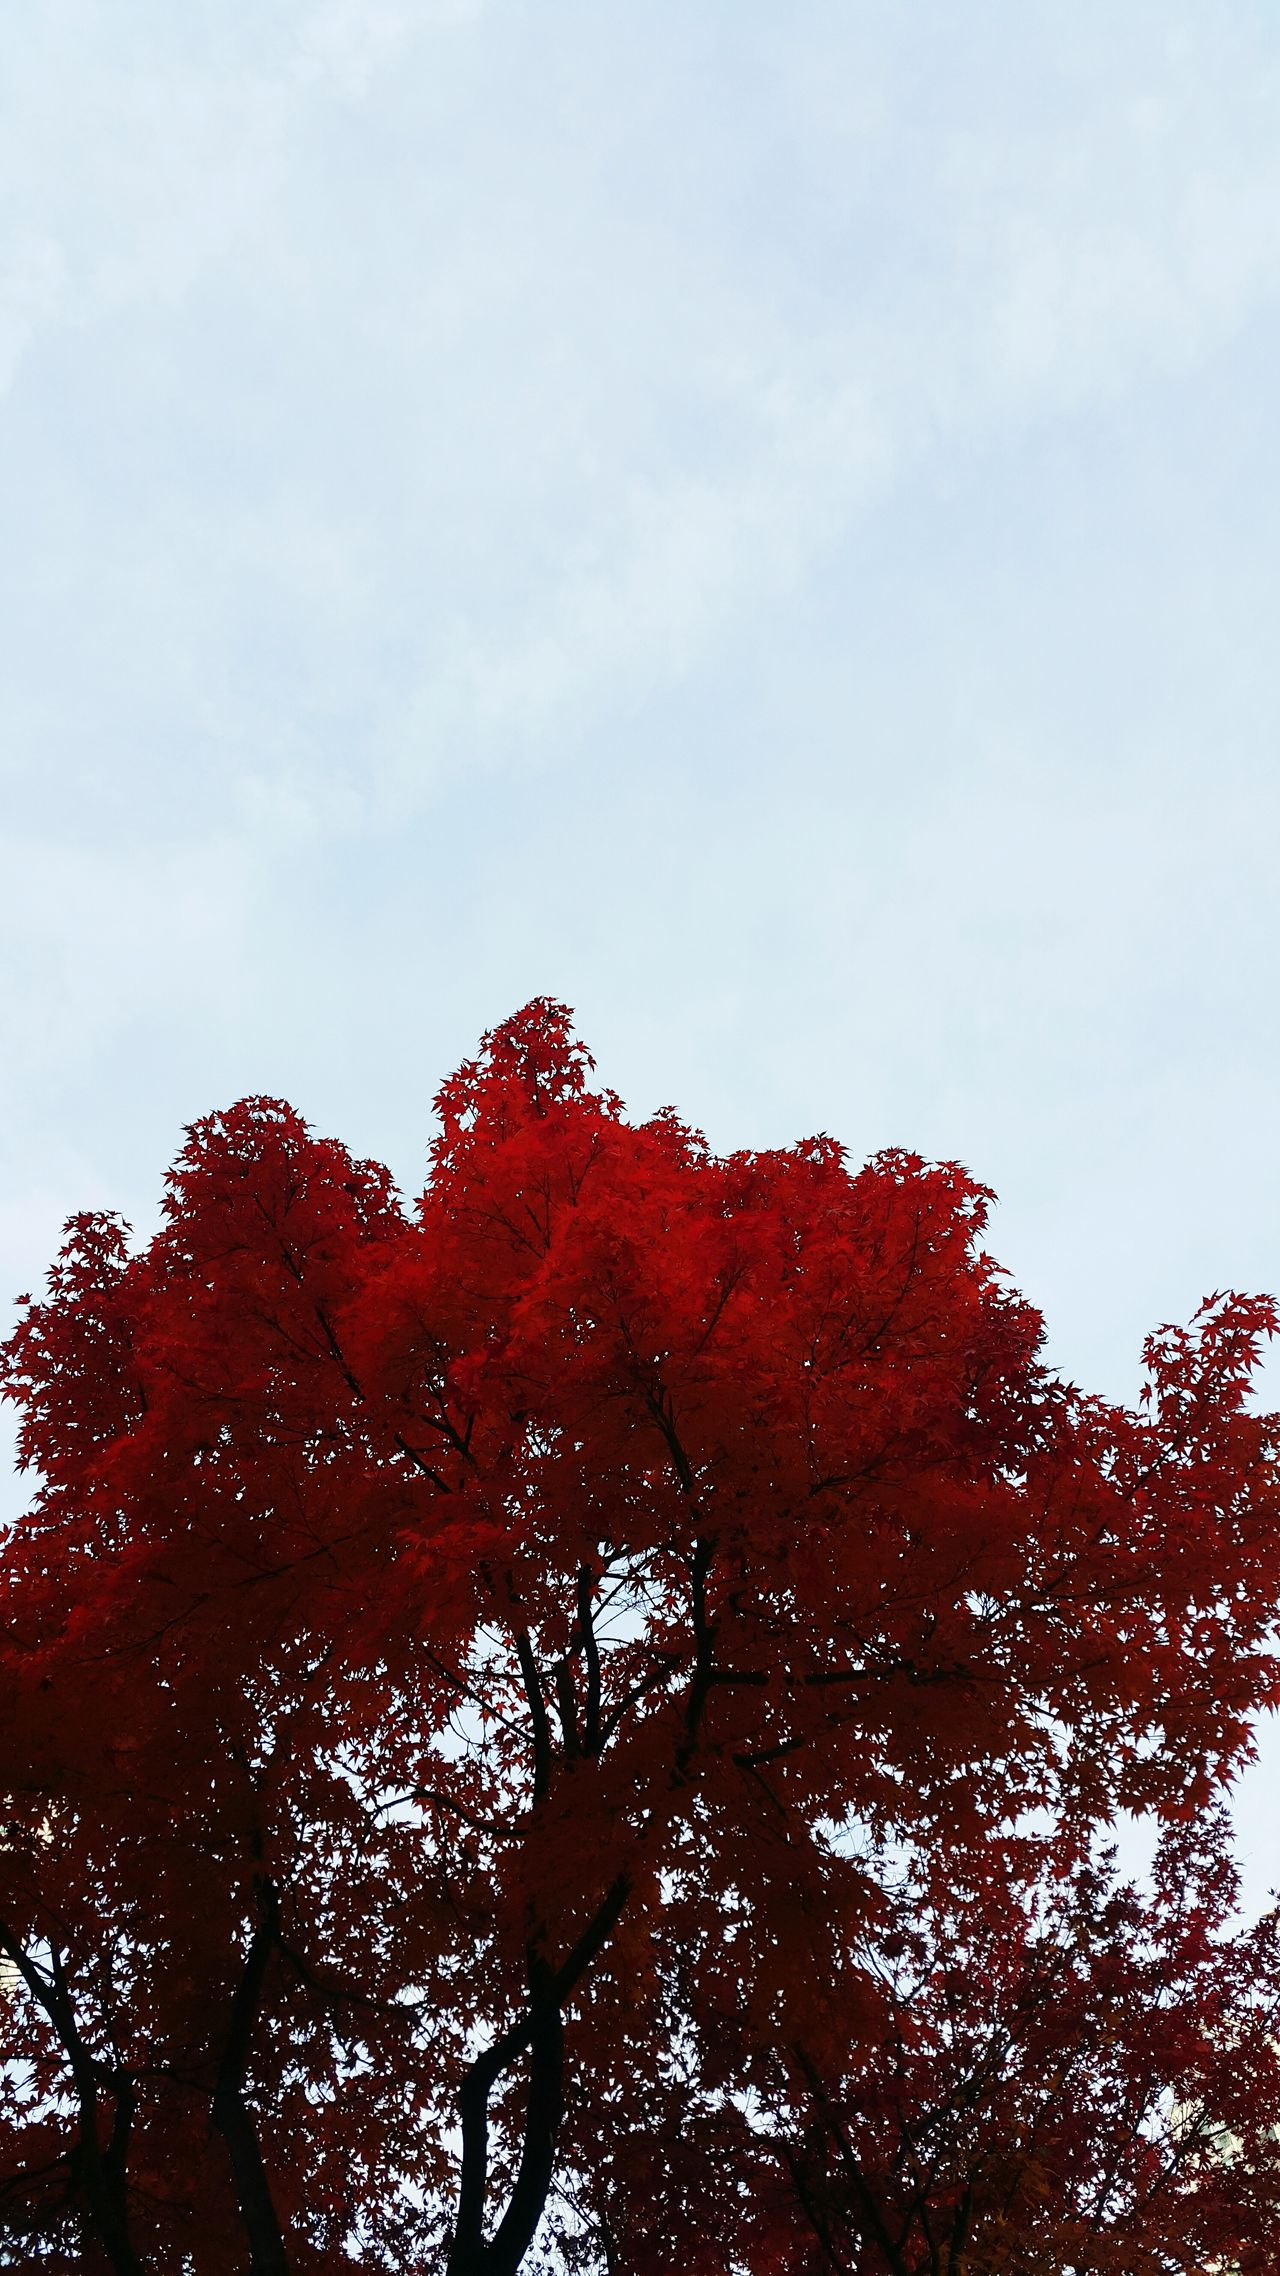 Red Sky Nature Tree Beauty In Nature Outdoors Capture The Moment Relaxing Moments Maple Tree Maple Leaf 😚 Calm And Quiet Autumn🍁🍁🍁 EyeEm Gallery 2016 EyeEm Awards Autumn 2016 LongTime  Nostalgia Fall Beauty Autumn Colors HASHTAG